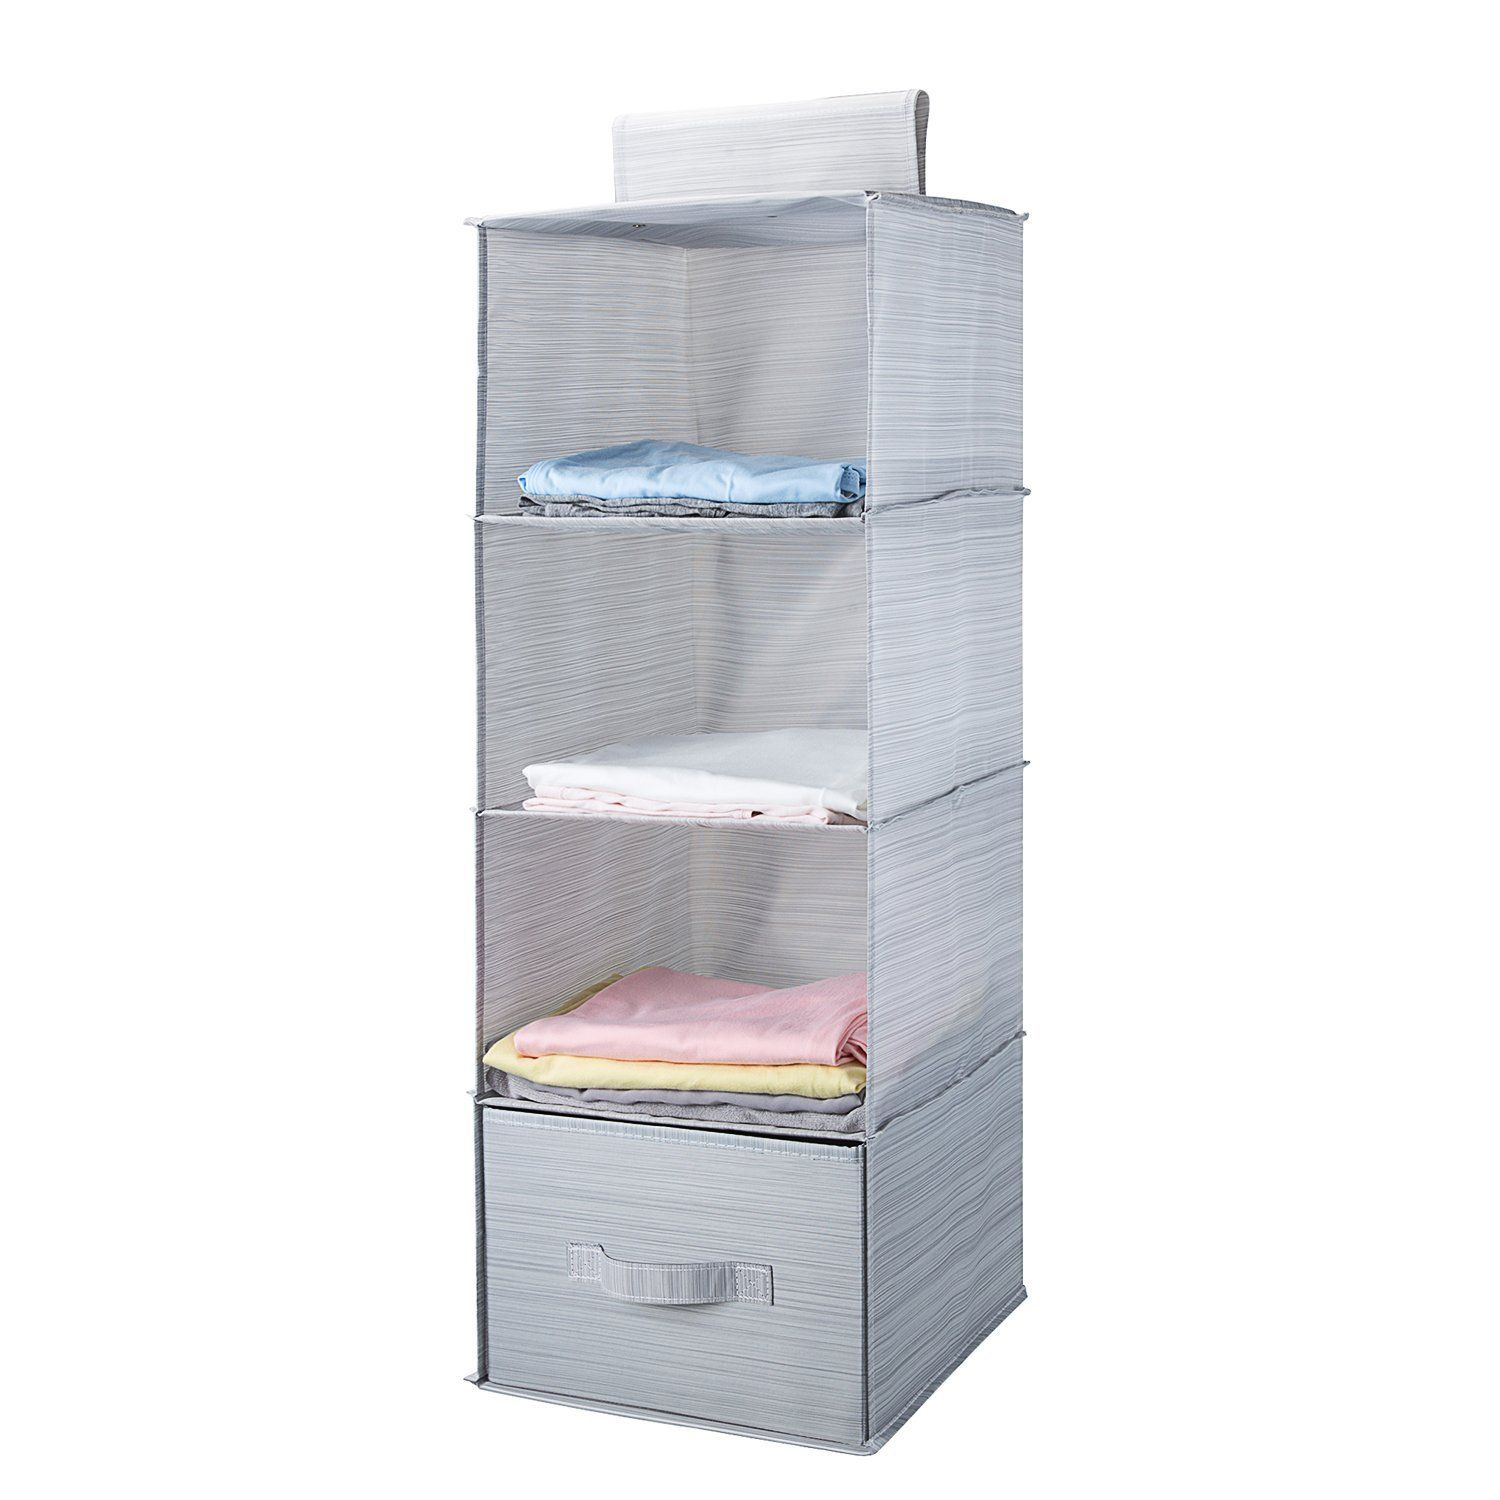 This Collapsible Hanging Closet Organizer System Has Four Easy Access,